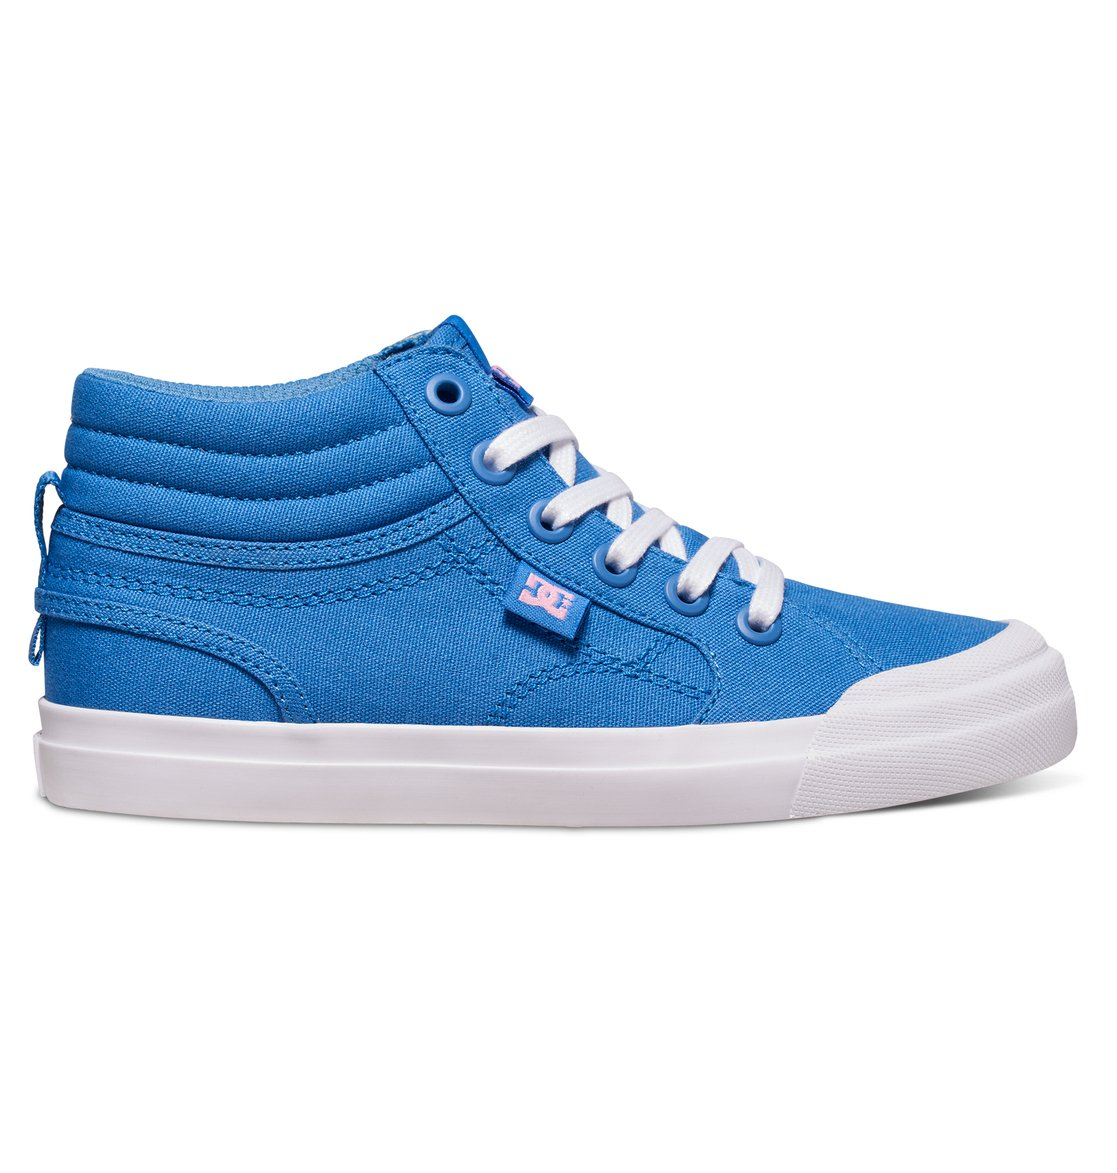 DC Youth Style Evan Smith Hi TX Mens Offer